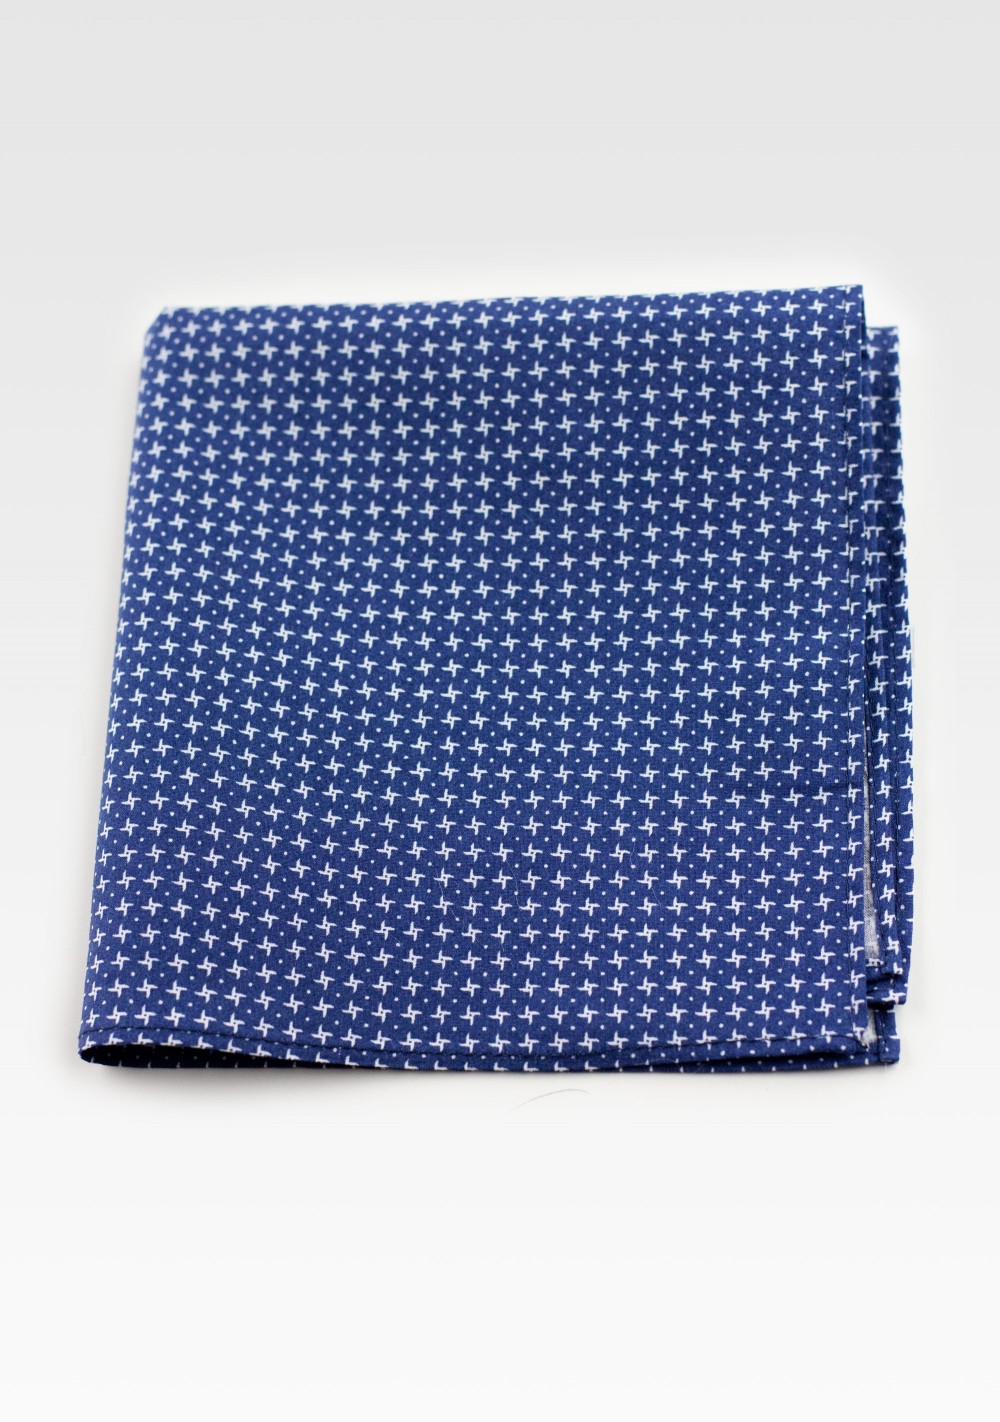 Cotton Pocket Square in Royal Blue with Geometric Print Pattern